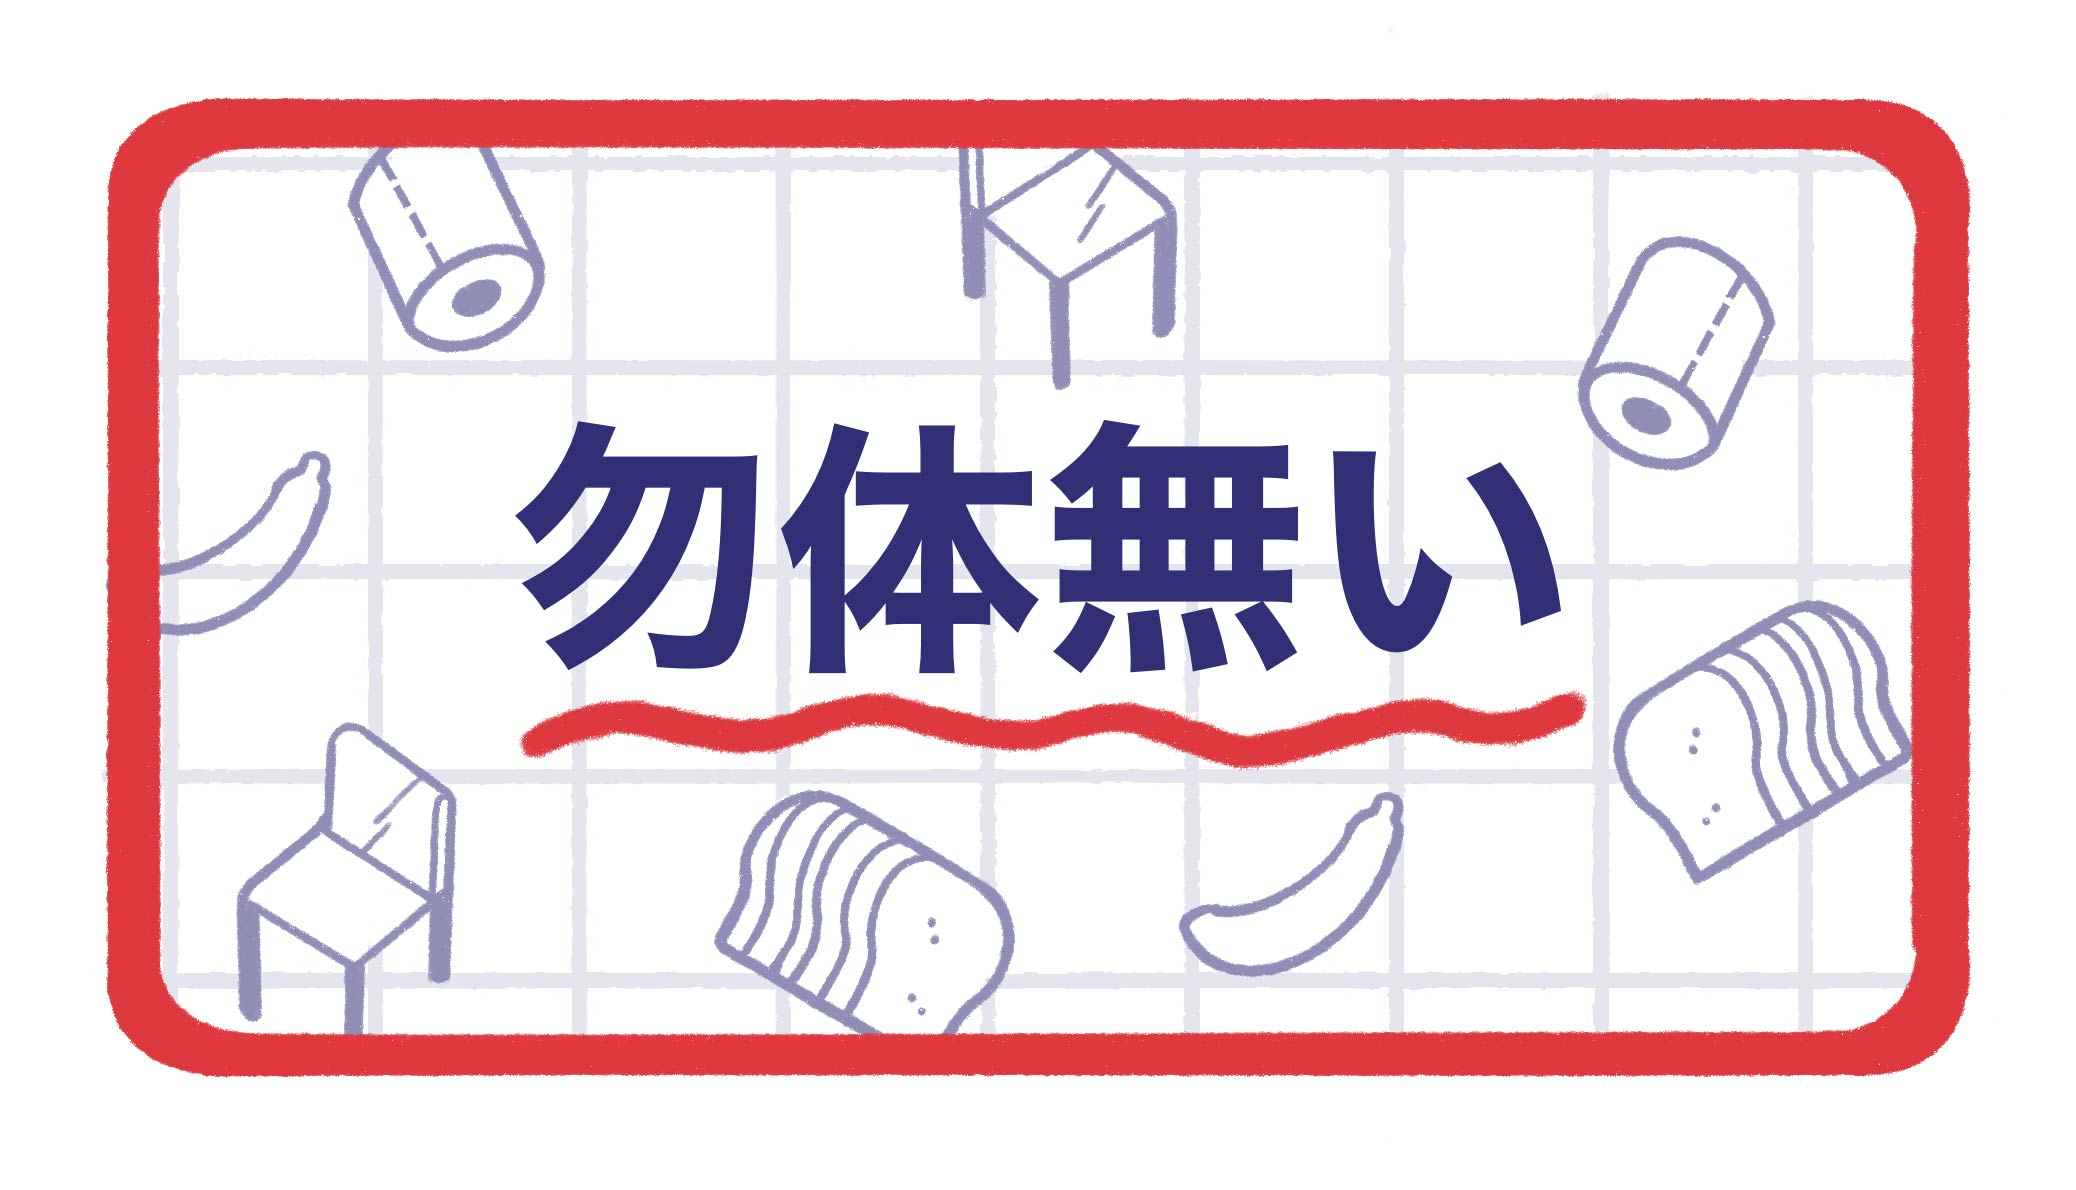 text 勿体無い with random things in the background